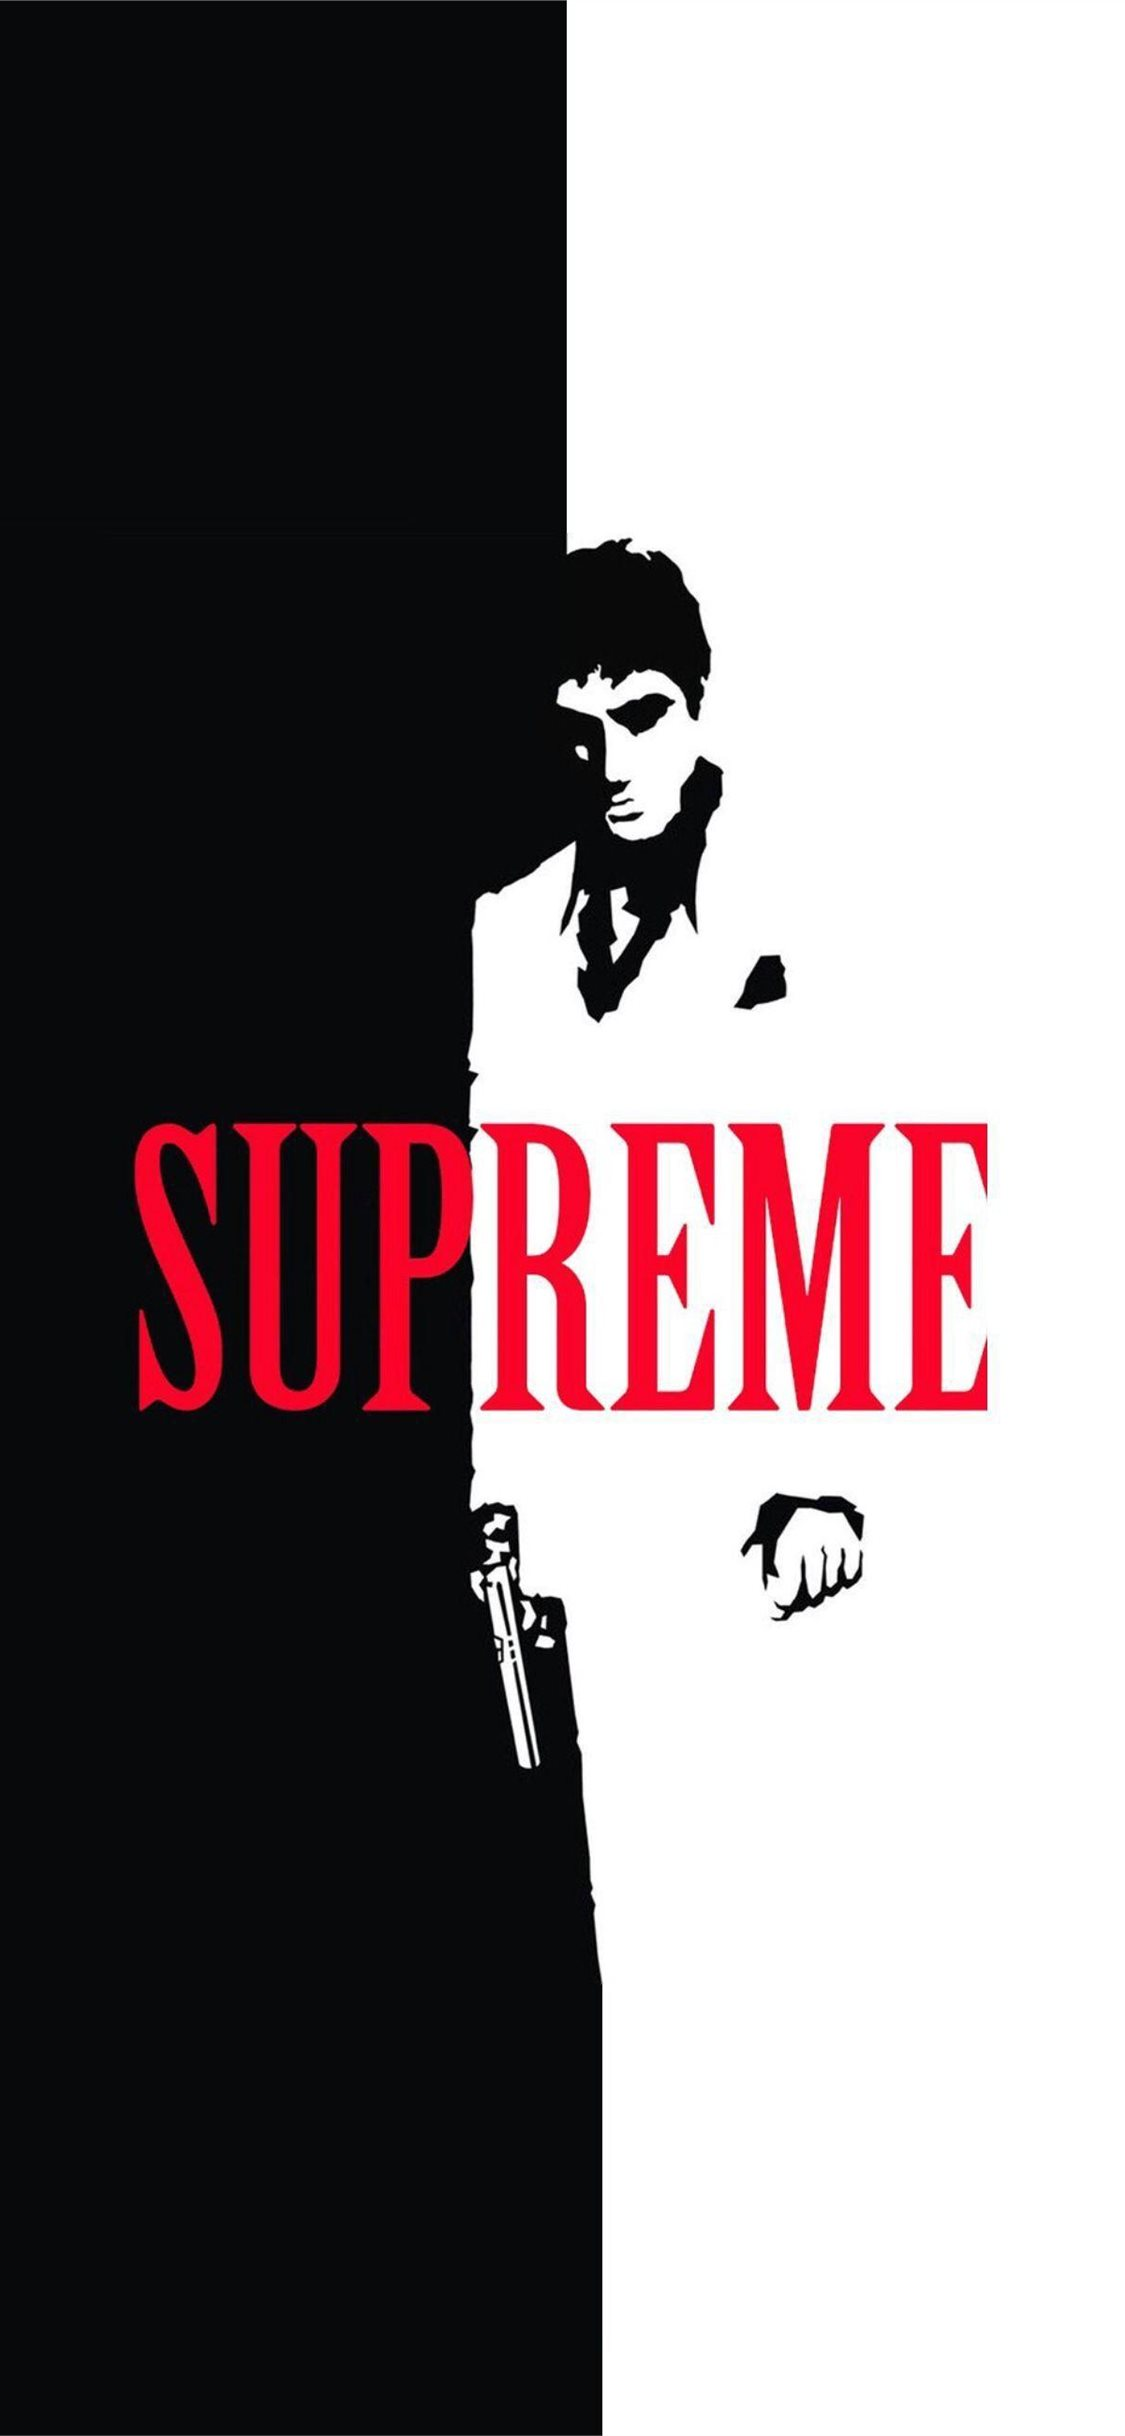 Supreme Cave Iphone X Wallpapers Free Download